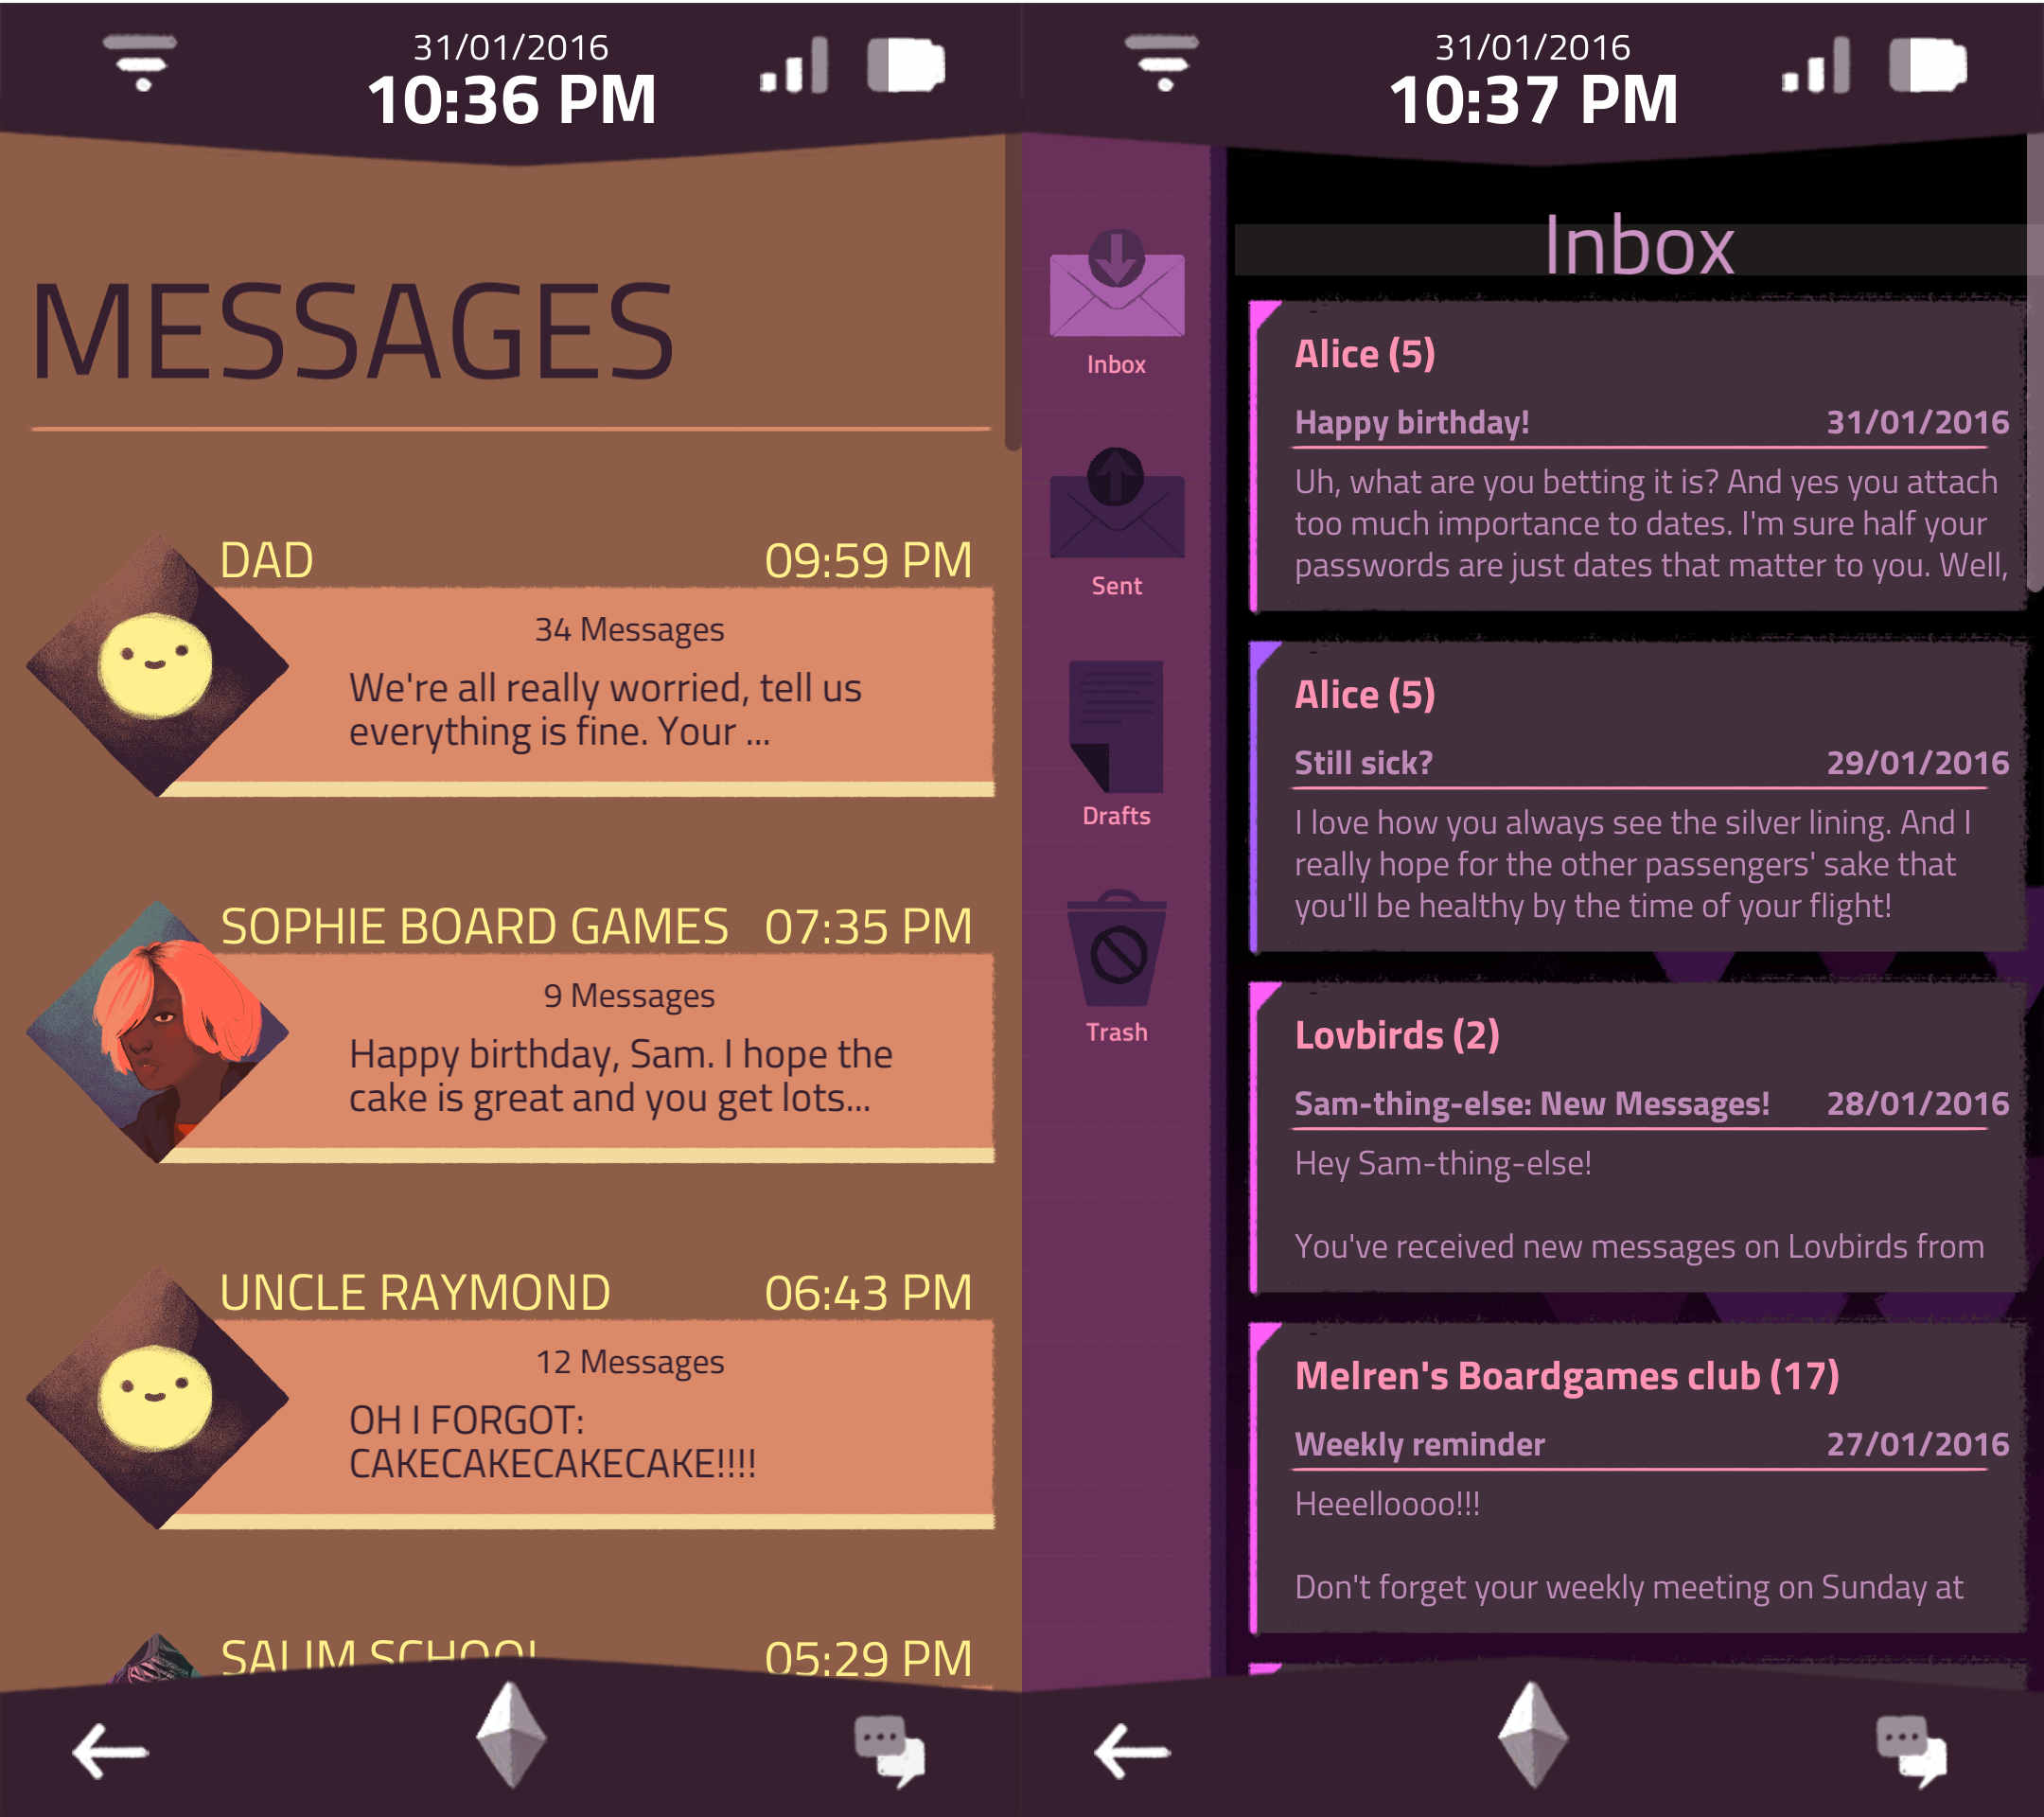 An image of the messages and email apps on the phone